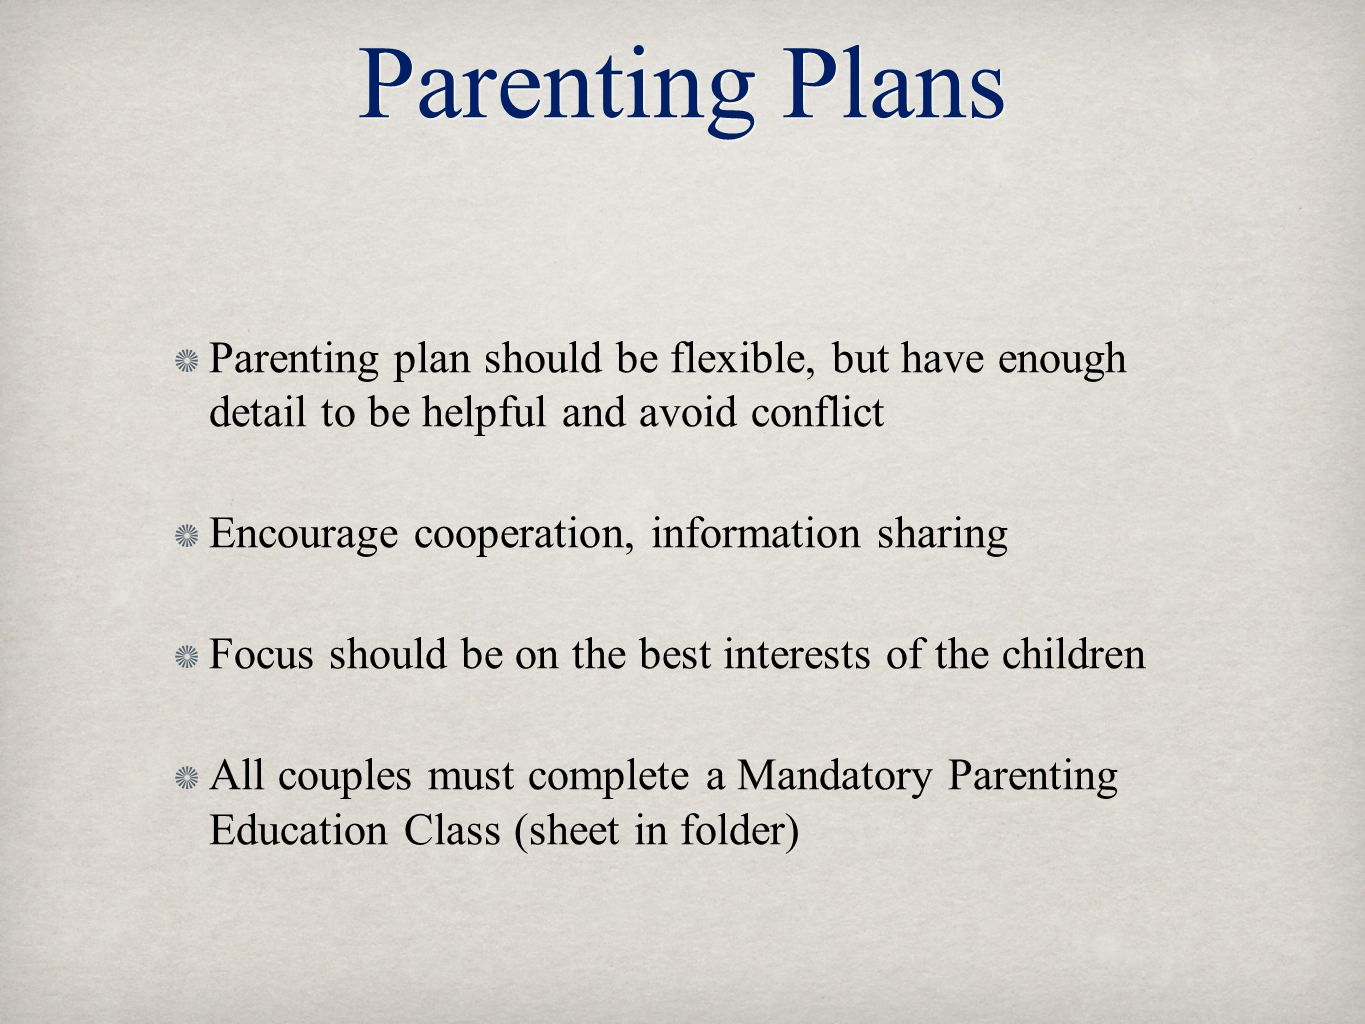 Parenting Plans Parenting plan should be flexible, but have enough detail to be helpful and avoid conflict.